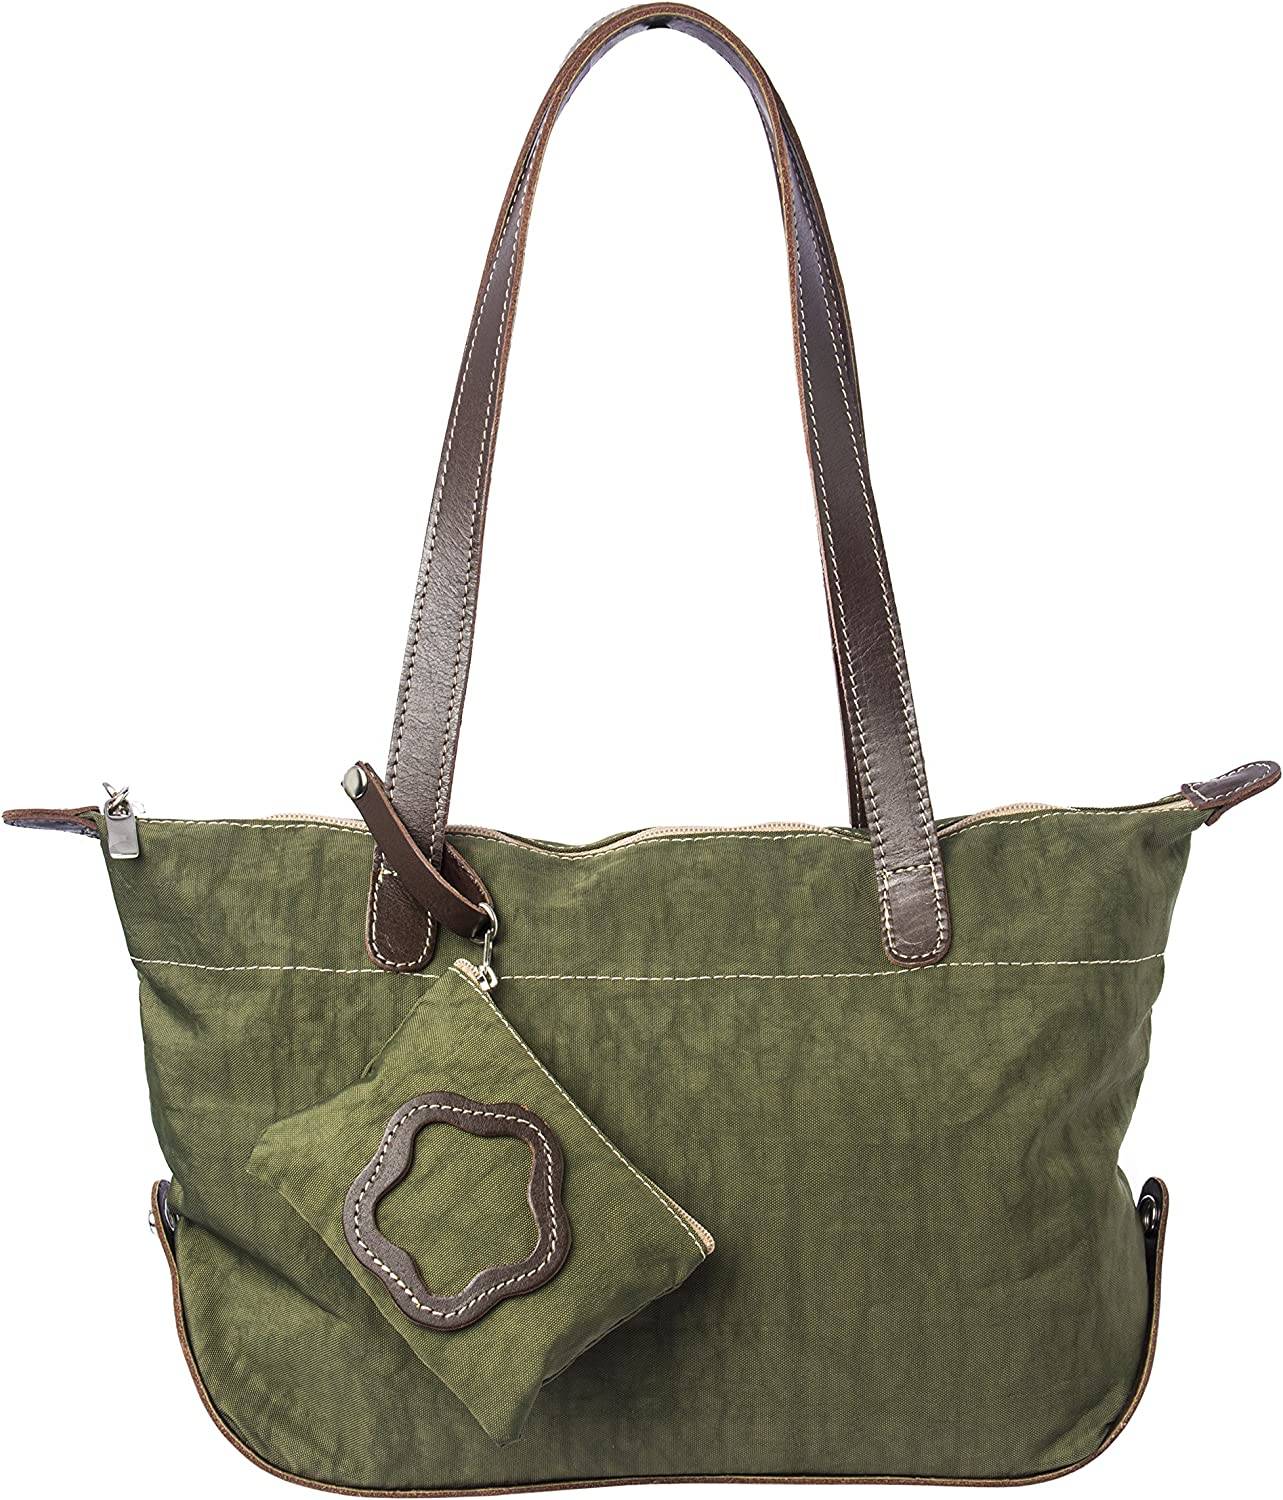 Ladies Moda Handbag